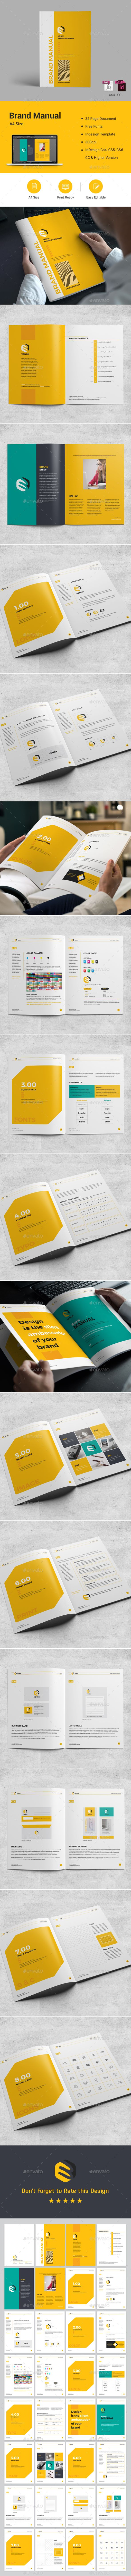 Brand Manual #indeisng #brochure • Download ➝ https://graphicriver.net/item/brand-manual/21255484?ref=pxcr